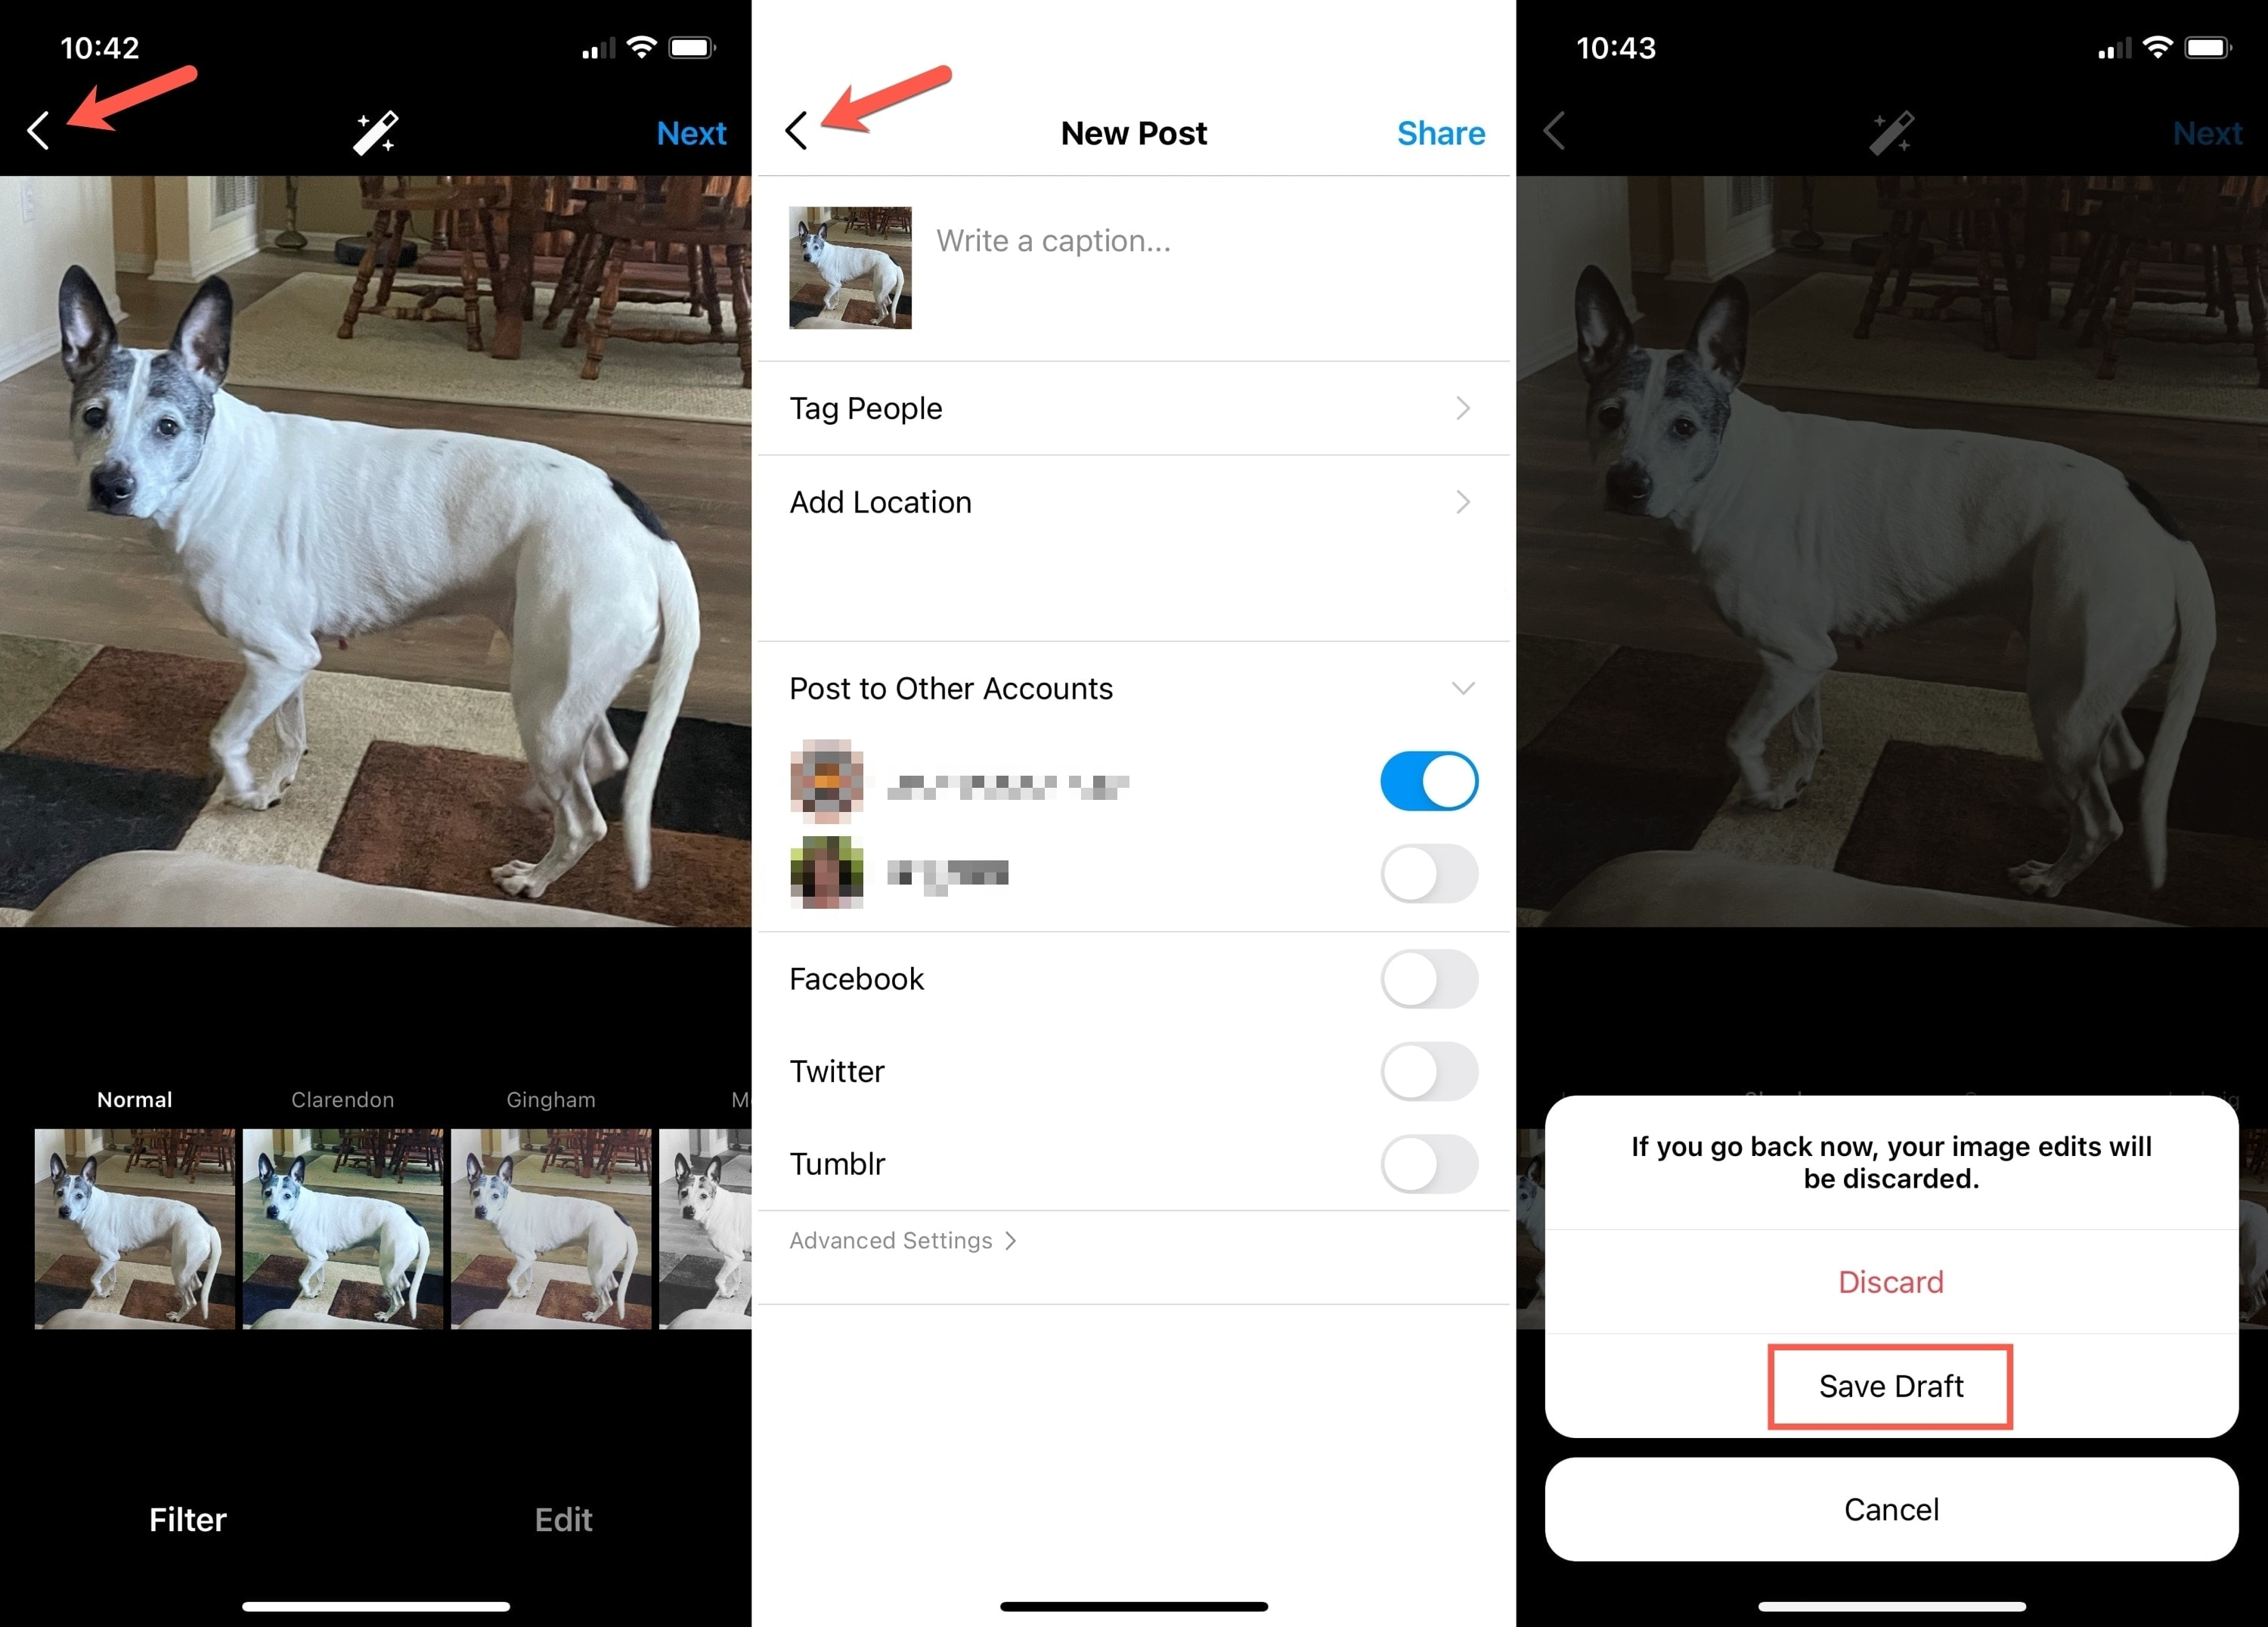 Instagram Tap Back and Save Draft